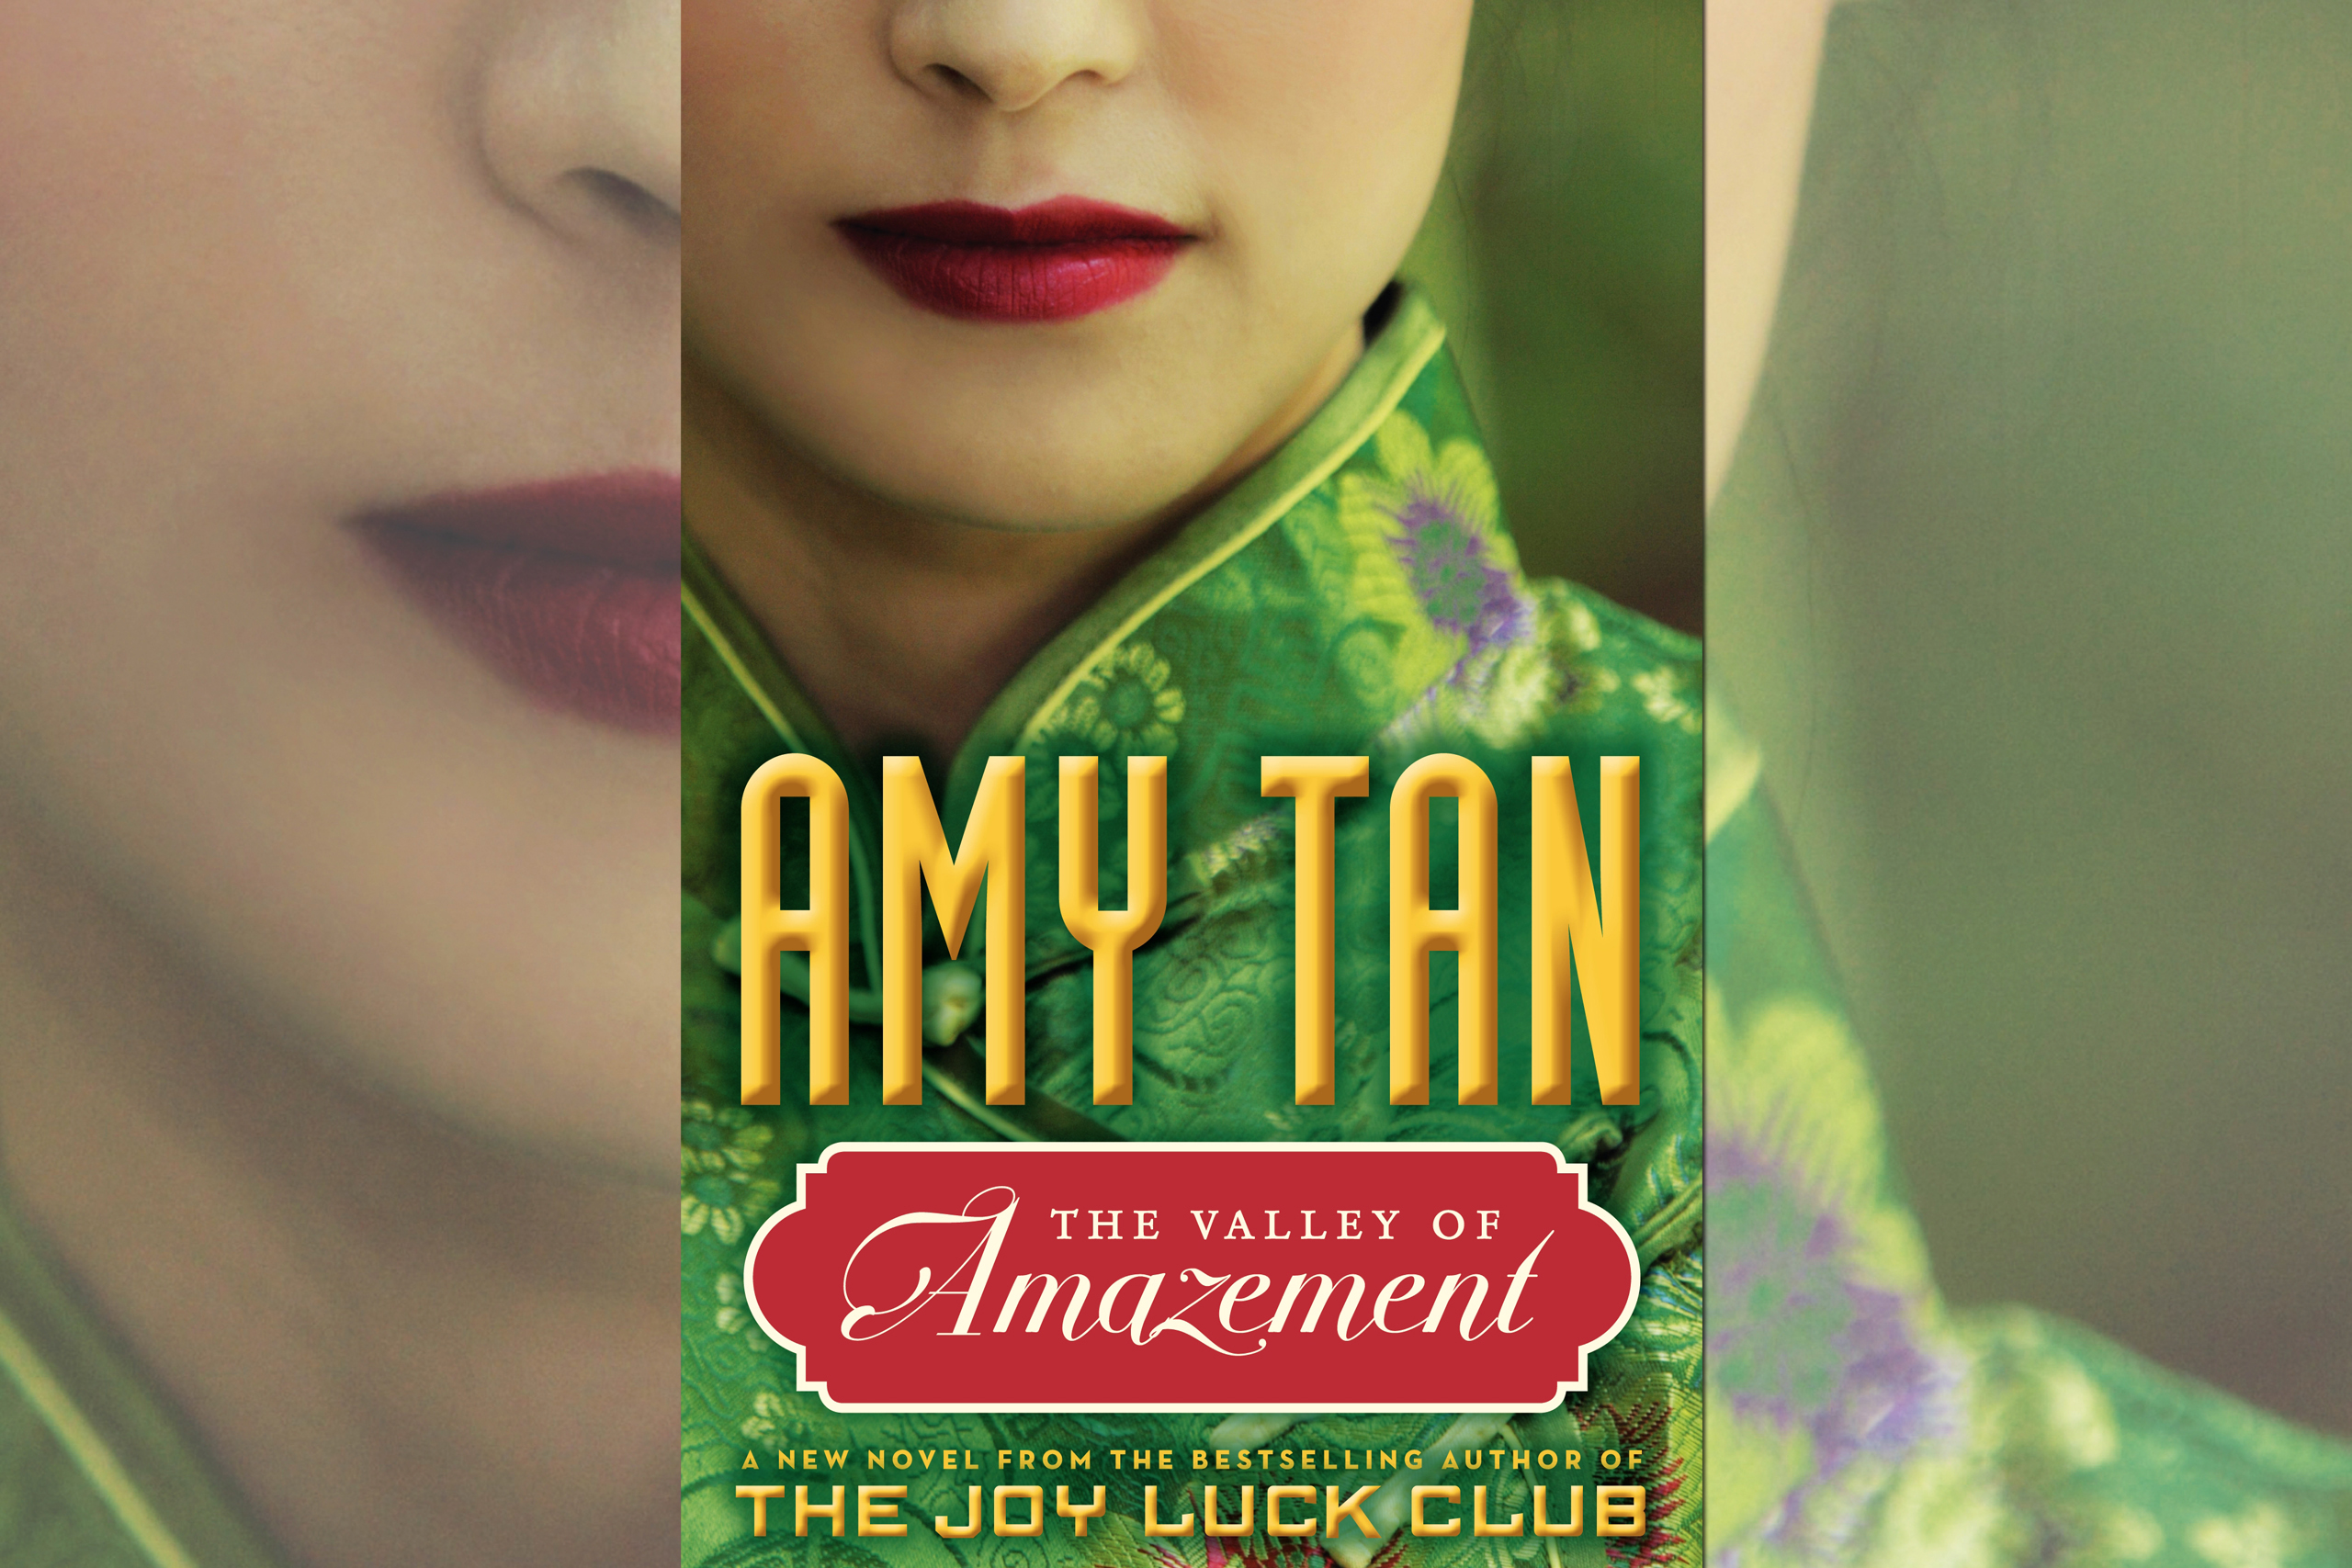 How Amy Tan's Book Taught Me To Let Go Of The Bitterness Of Betrayal